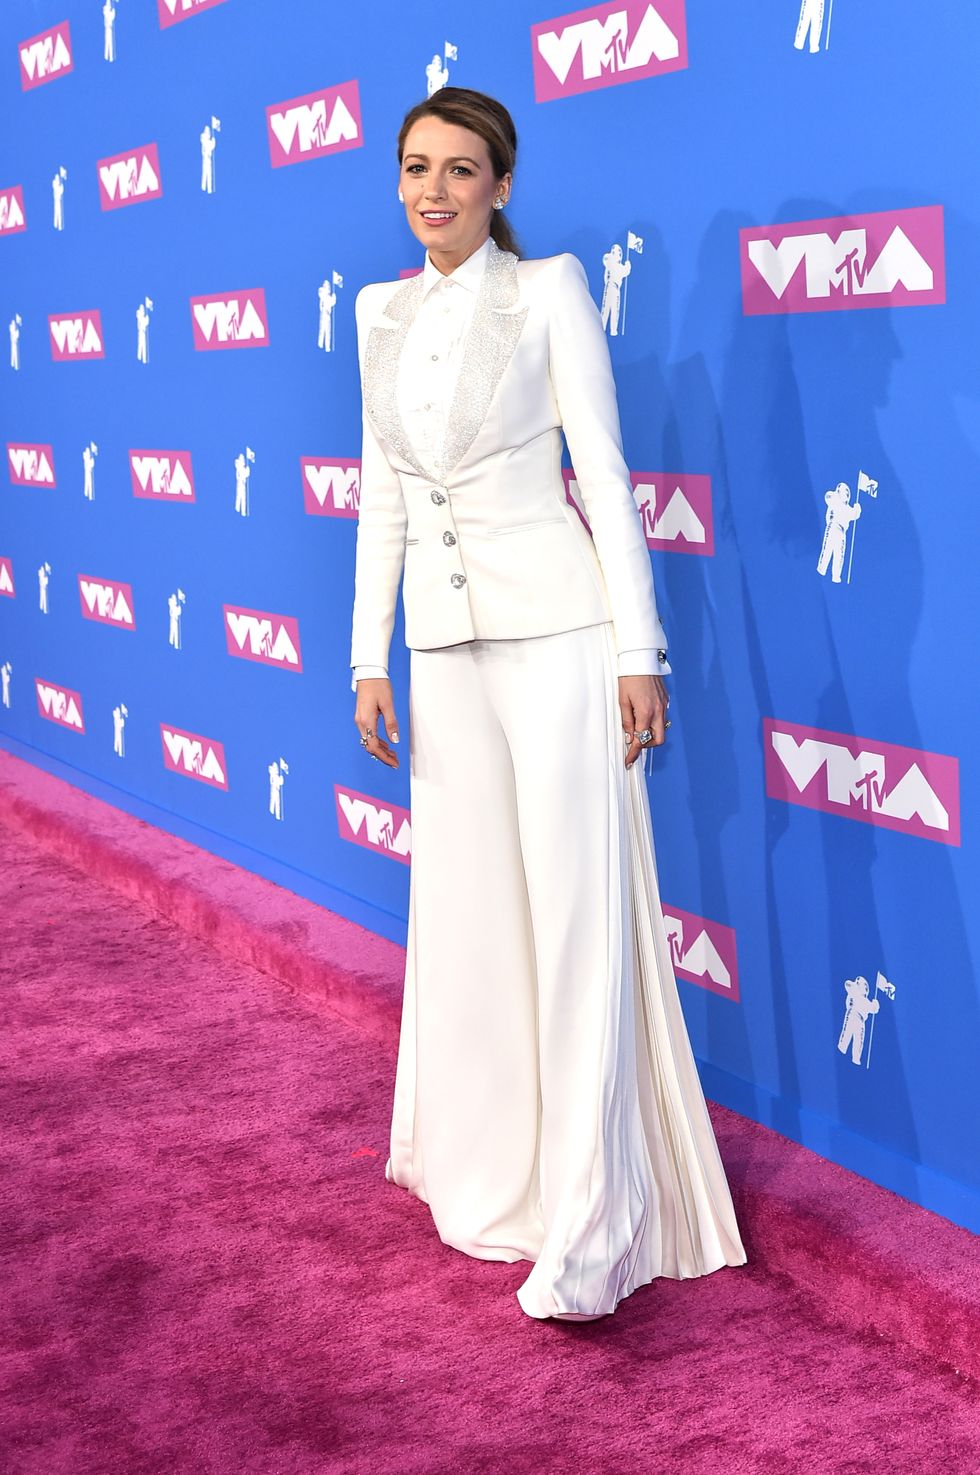 Blake Lively Looks Hot (Like, Temperature-Wise) in a White Suit at the MTV VMAs